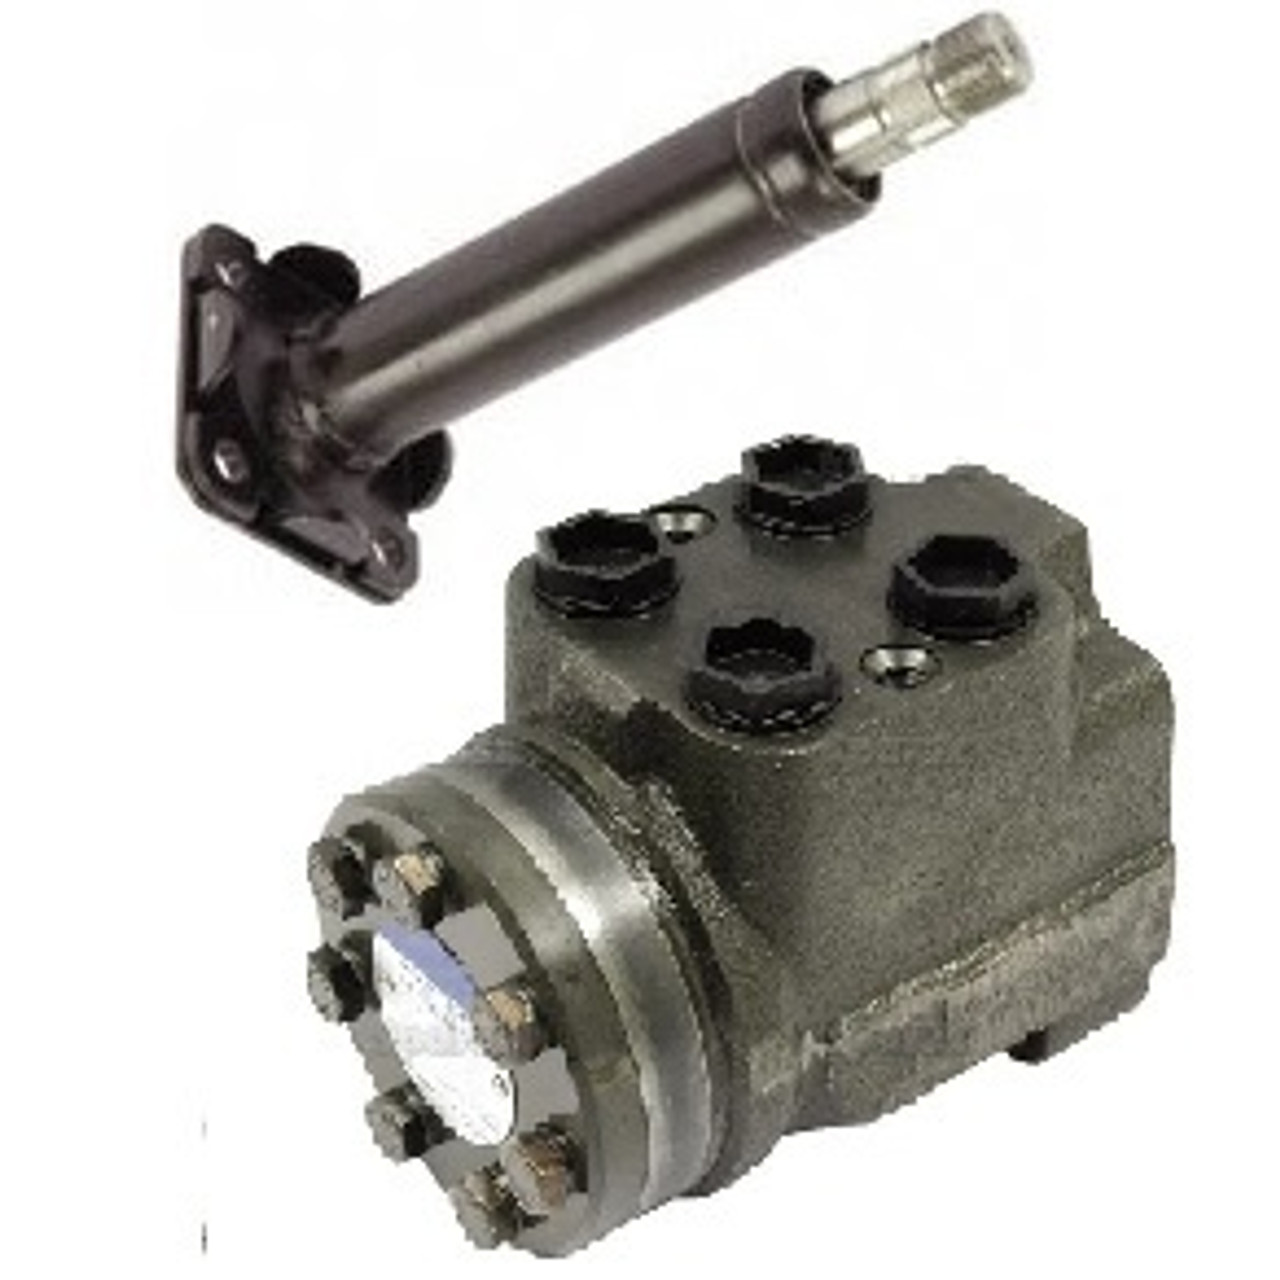 Power Steering Motor (Hand Pump)